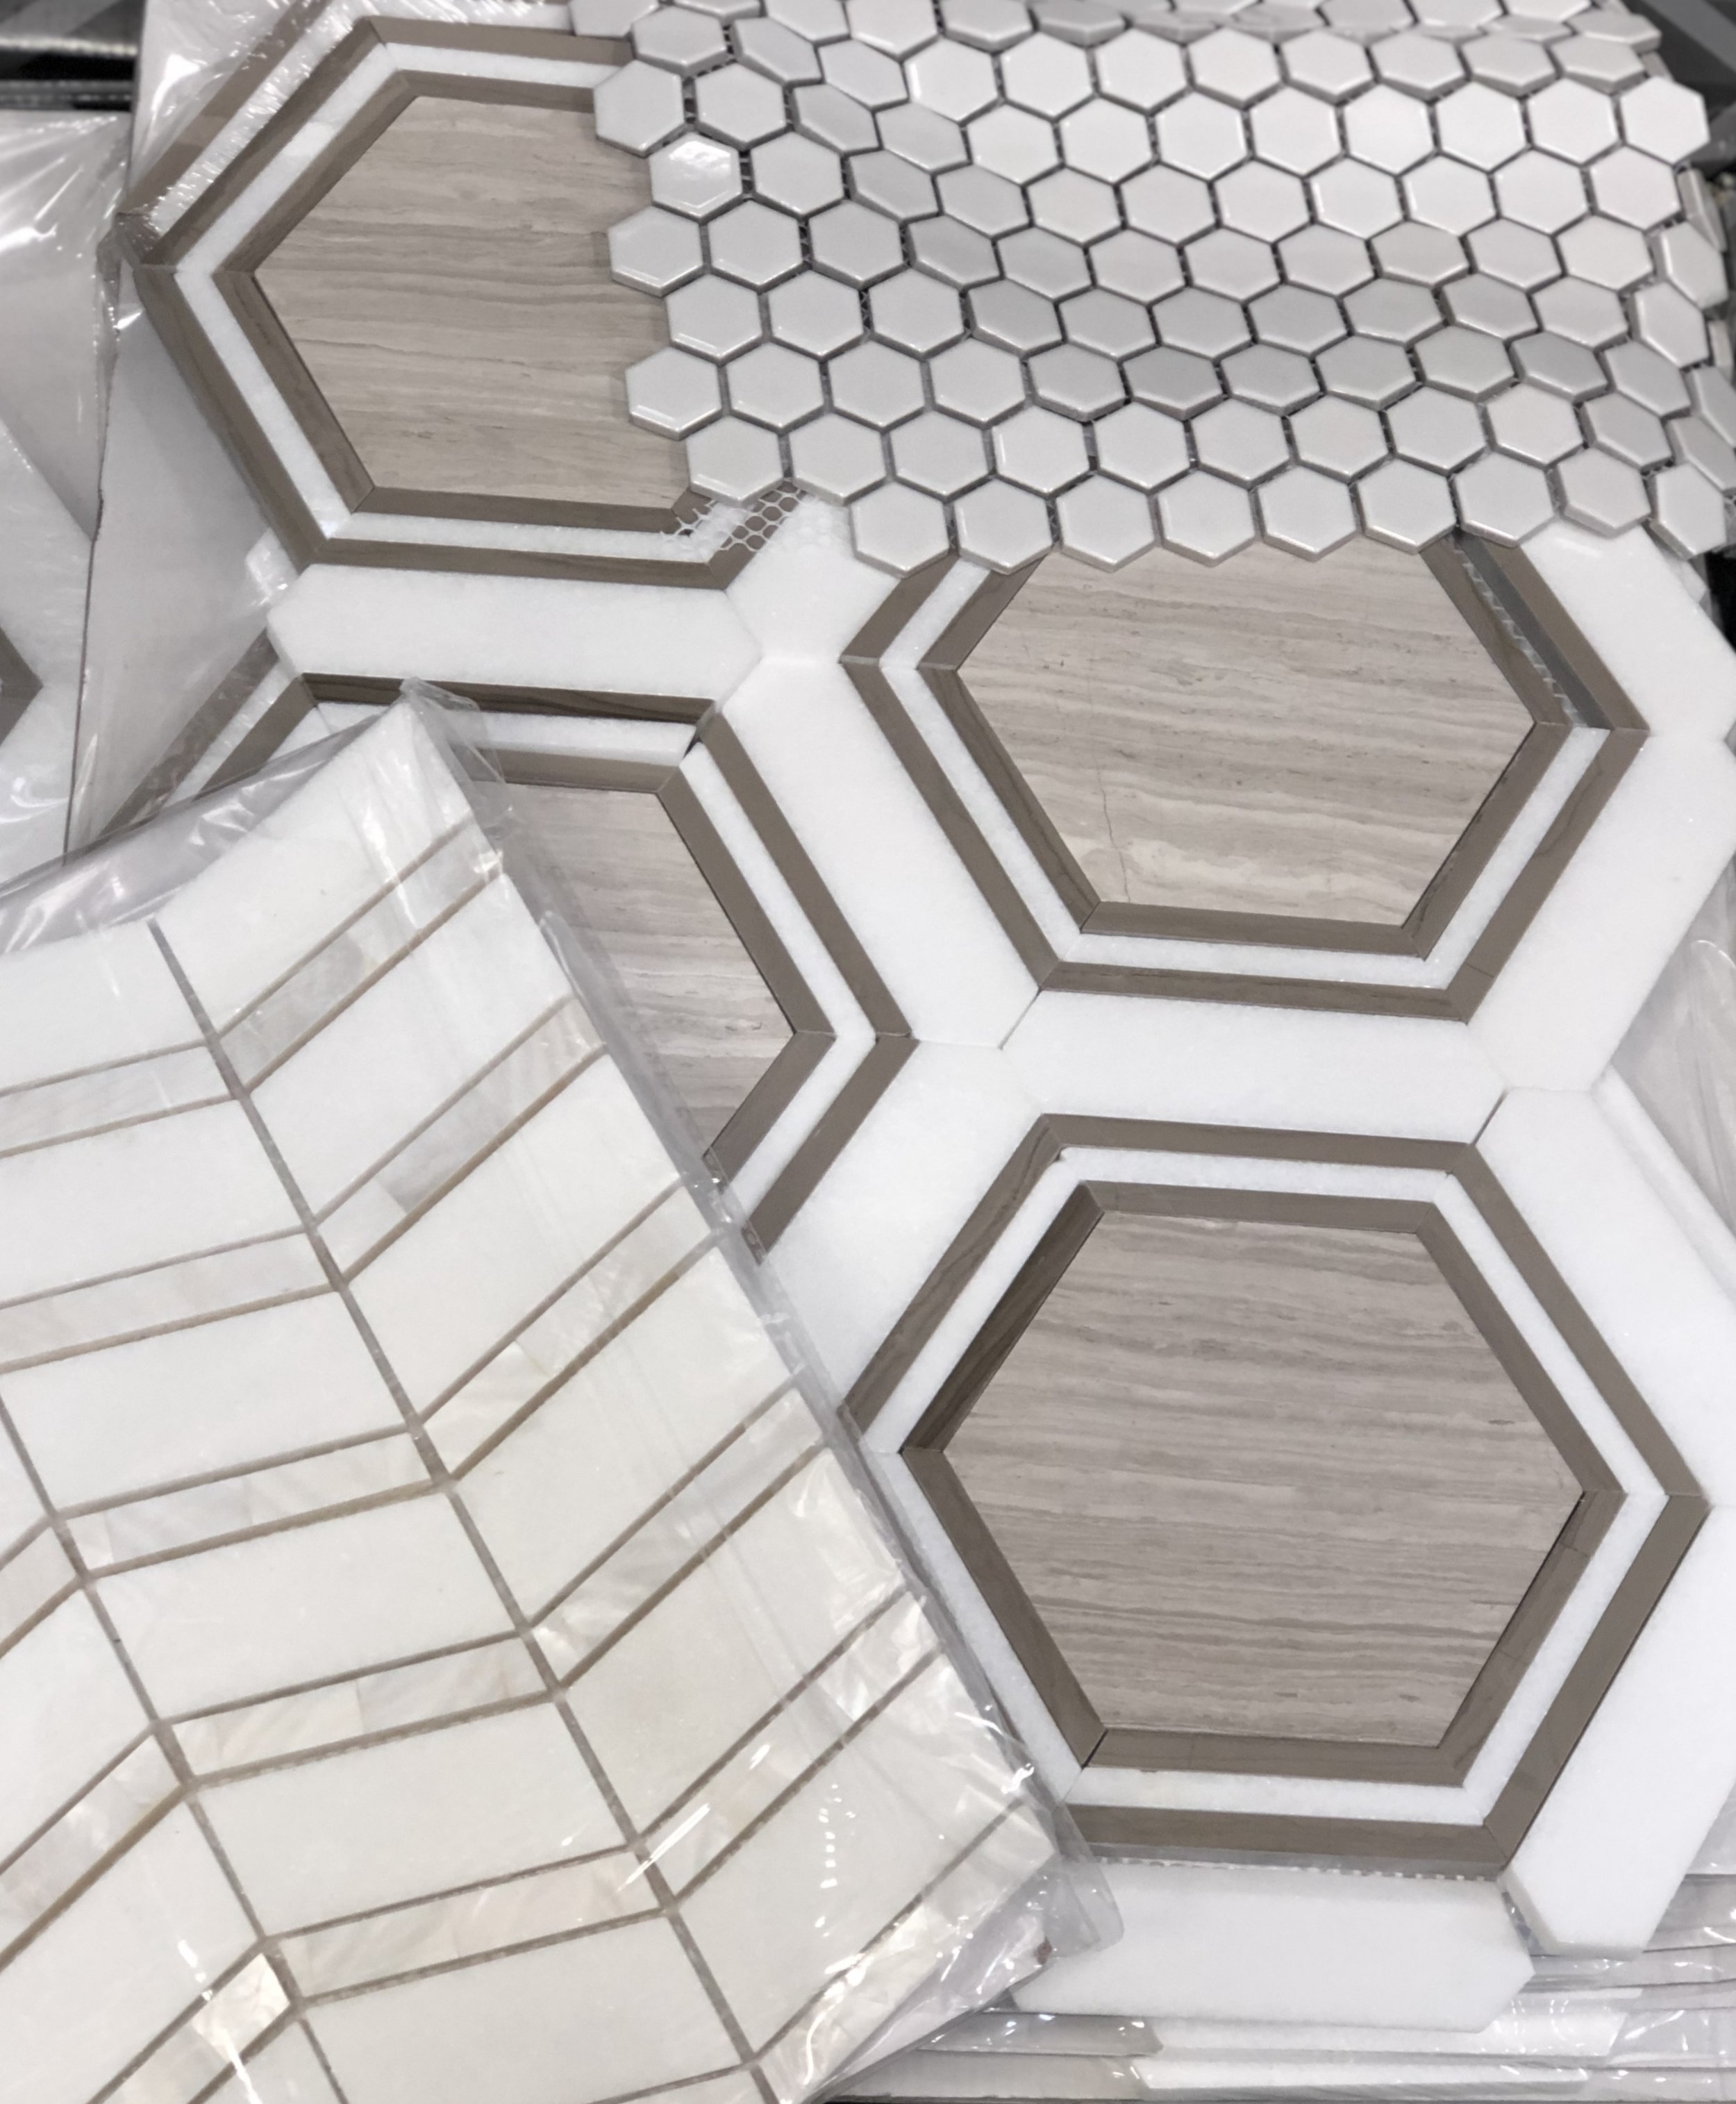 bathroom tile samples 3.jpg